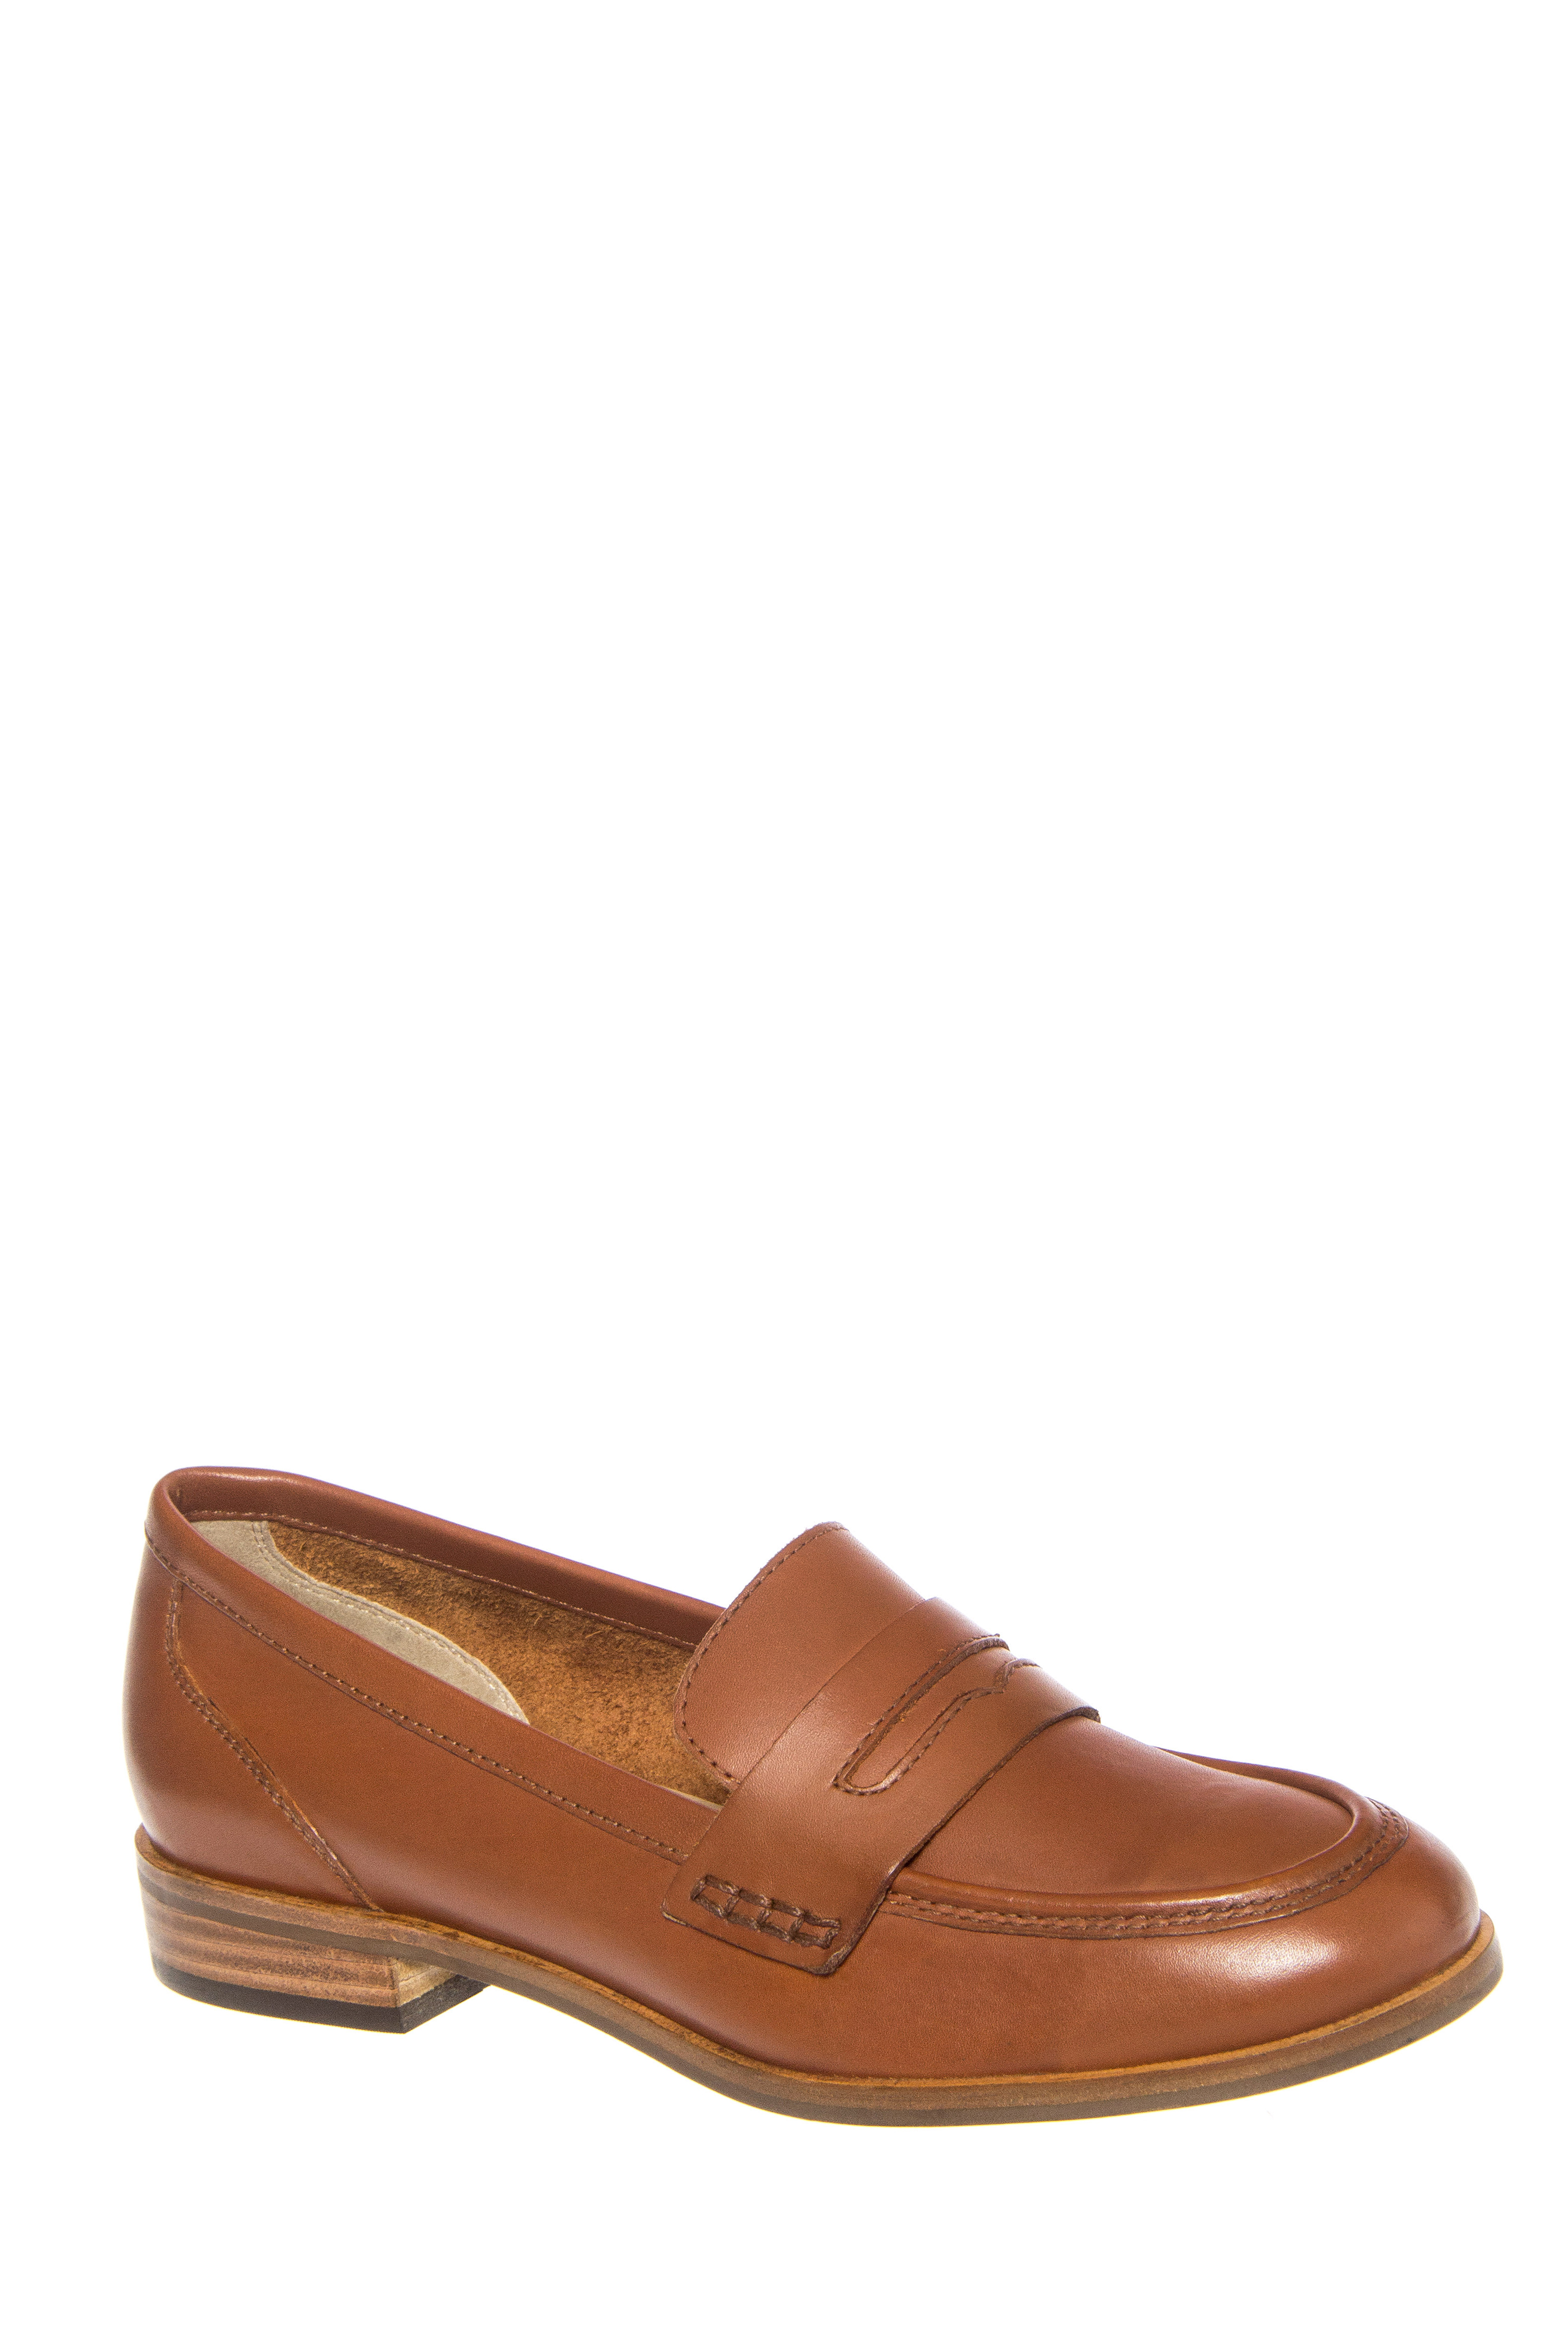 Seychelles Tigers Eye Loafers - Whiskey